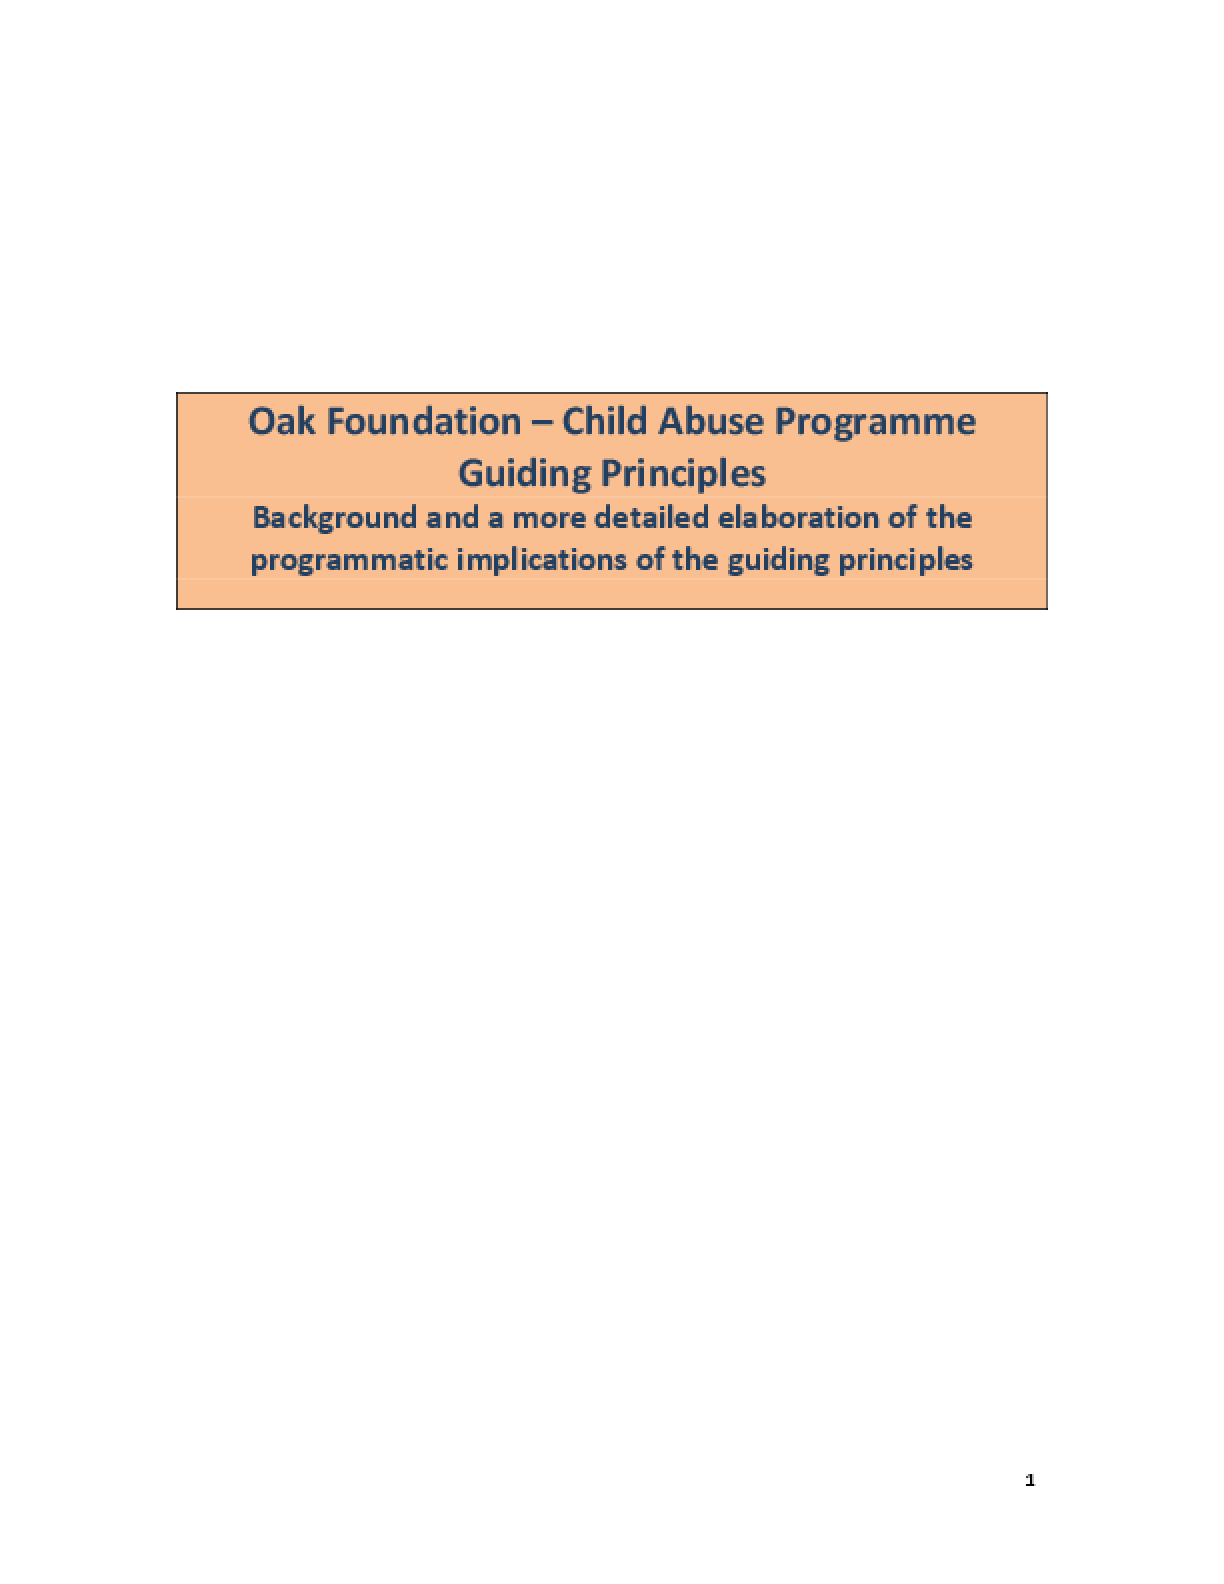 Child Abuse Programme Guiding Principles: Background and a More Detailed Elaboration of the Programmatic Implications of the Guiding Principles